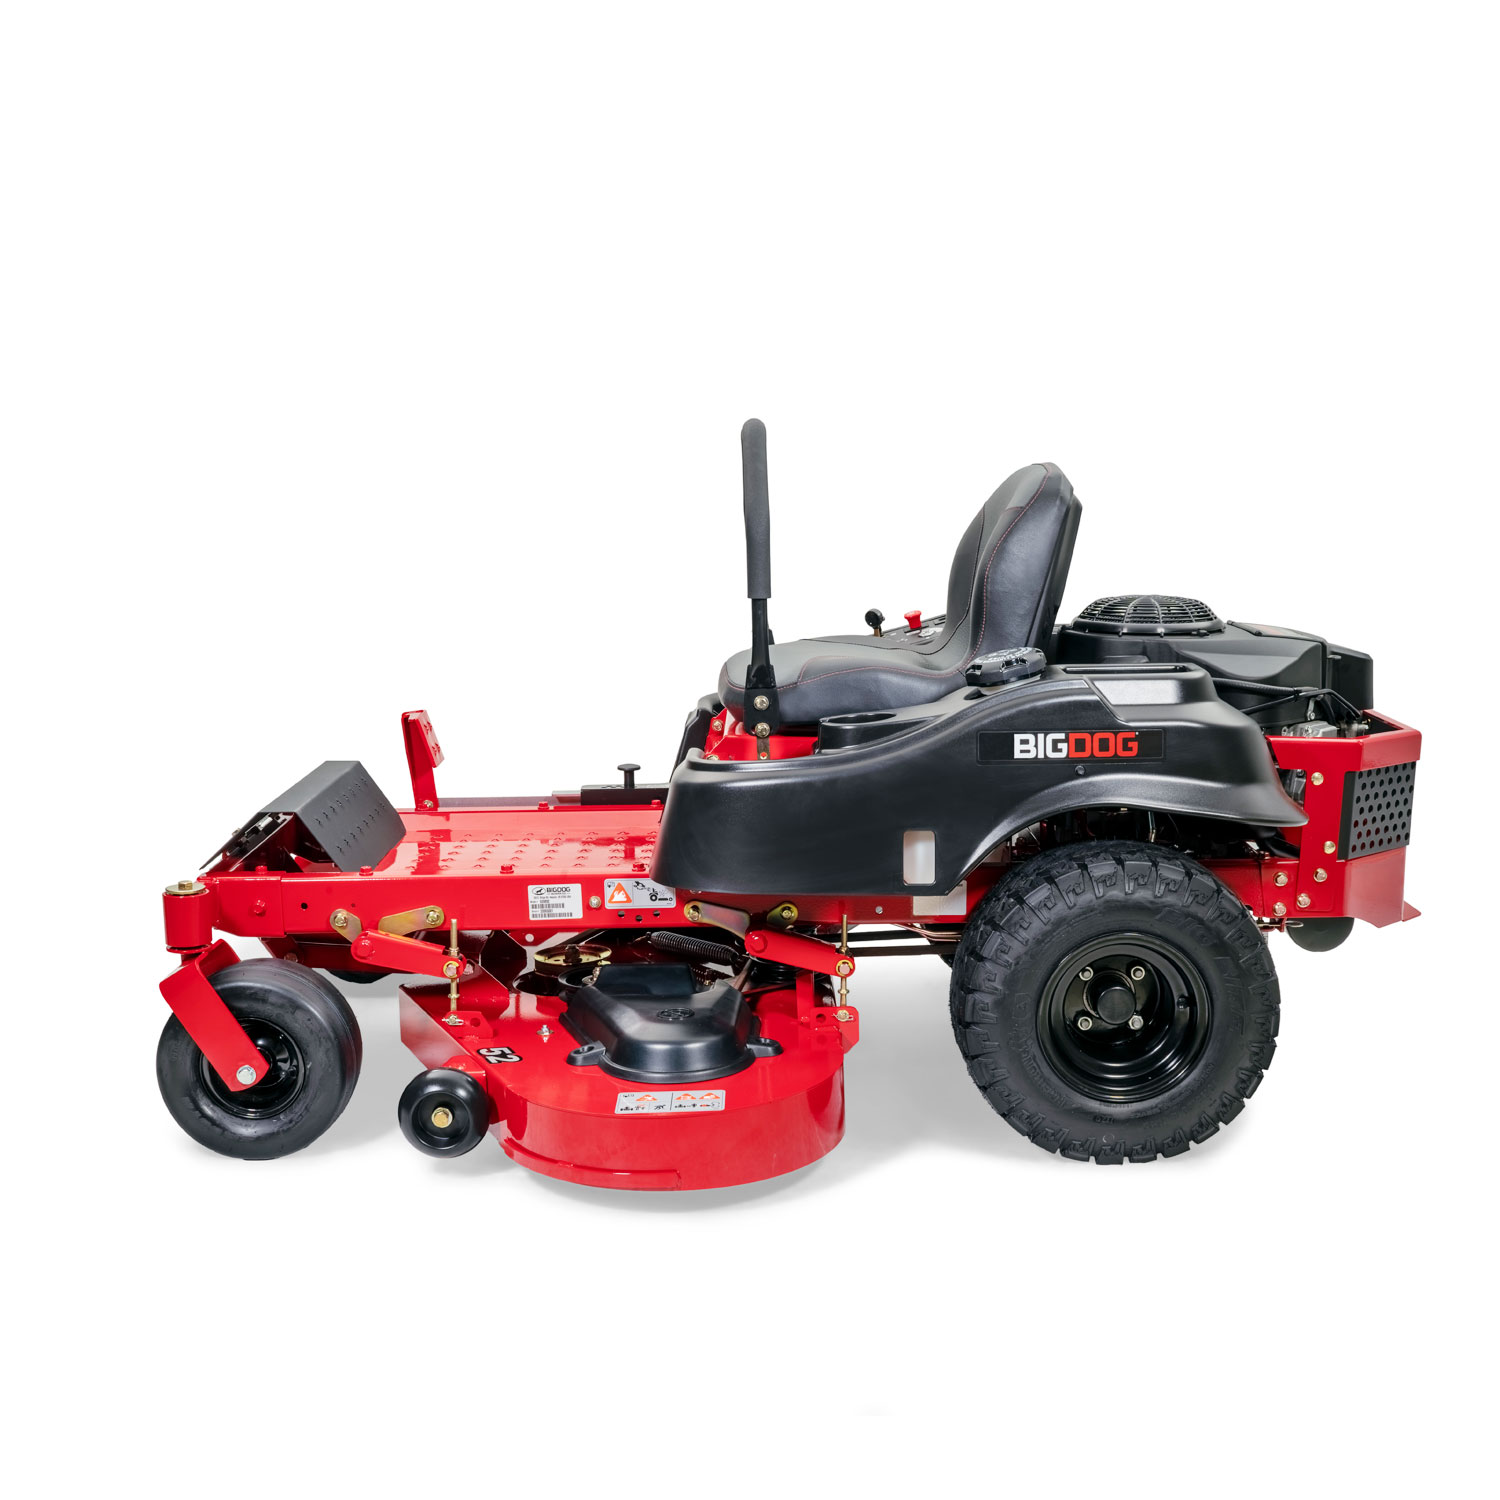 Image of the side of a red BigDog mower